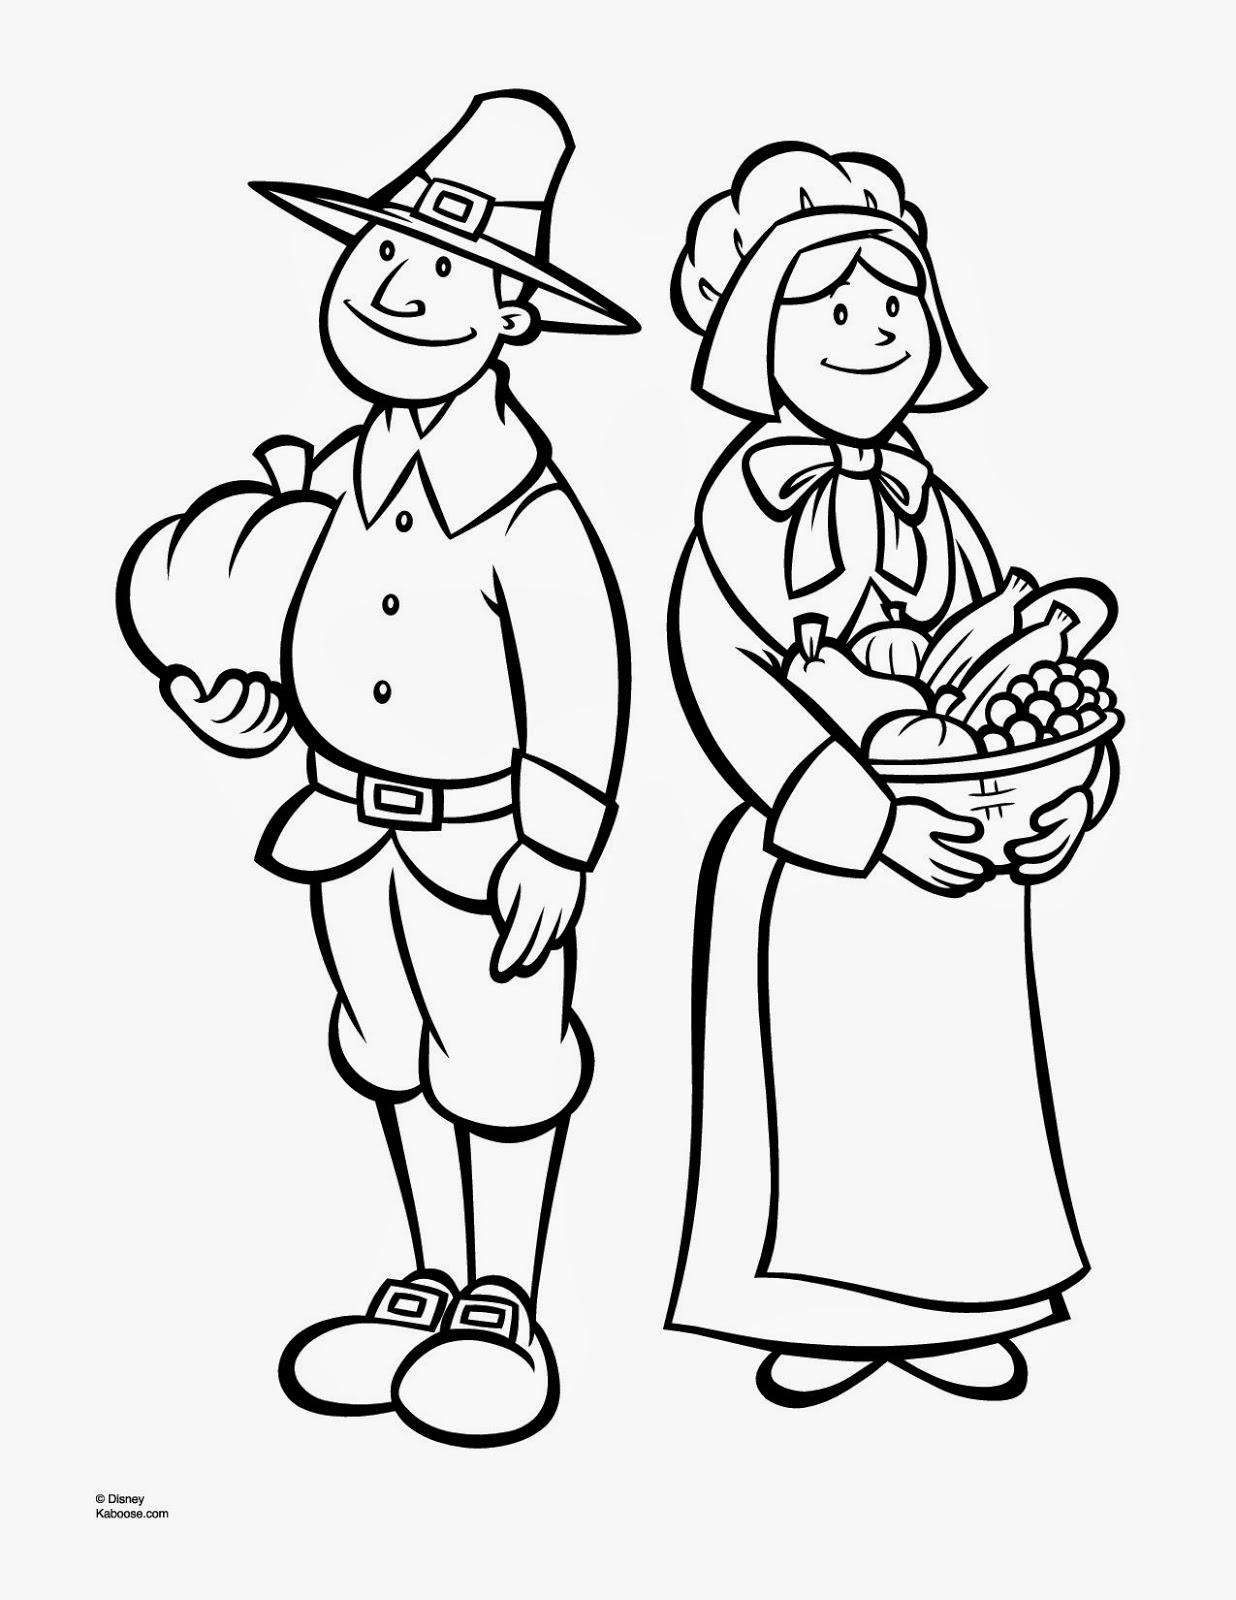 Thanksgiving Day Printable Coloring Pages - Minnesota Miranda